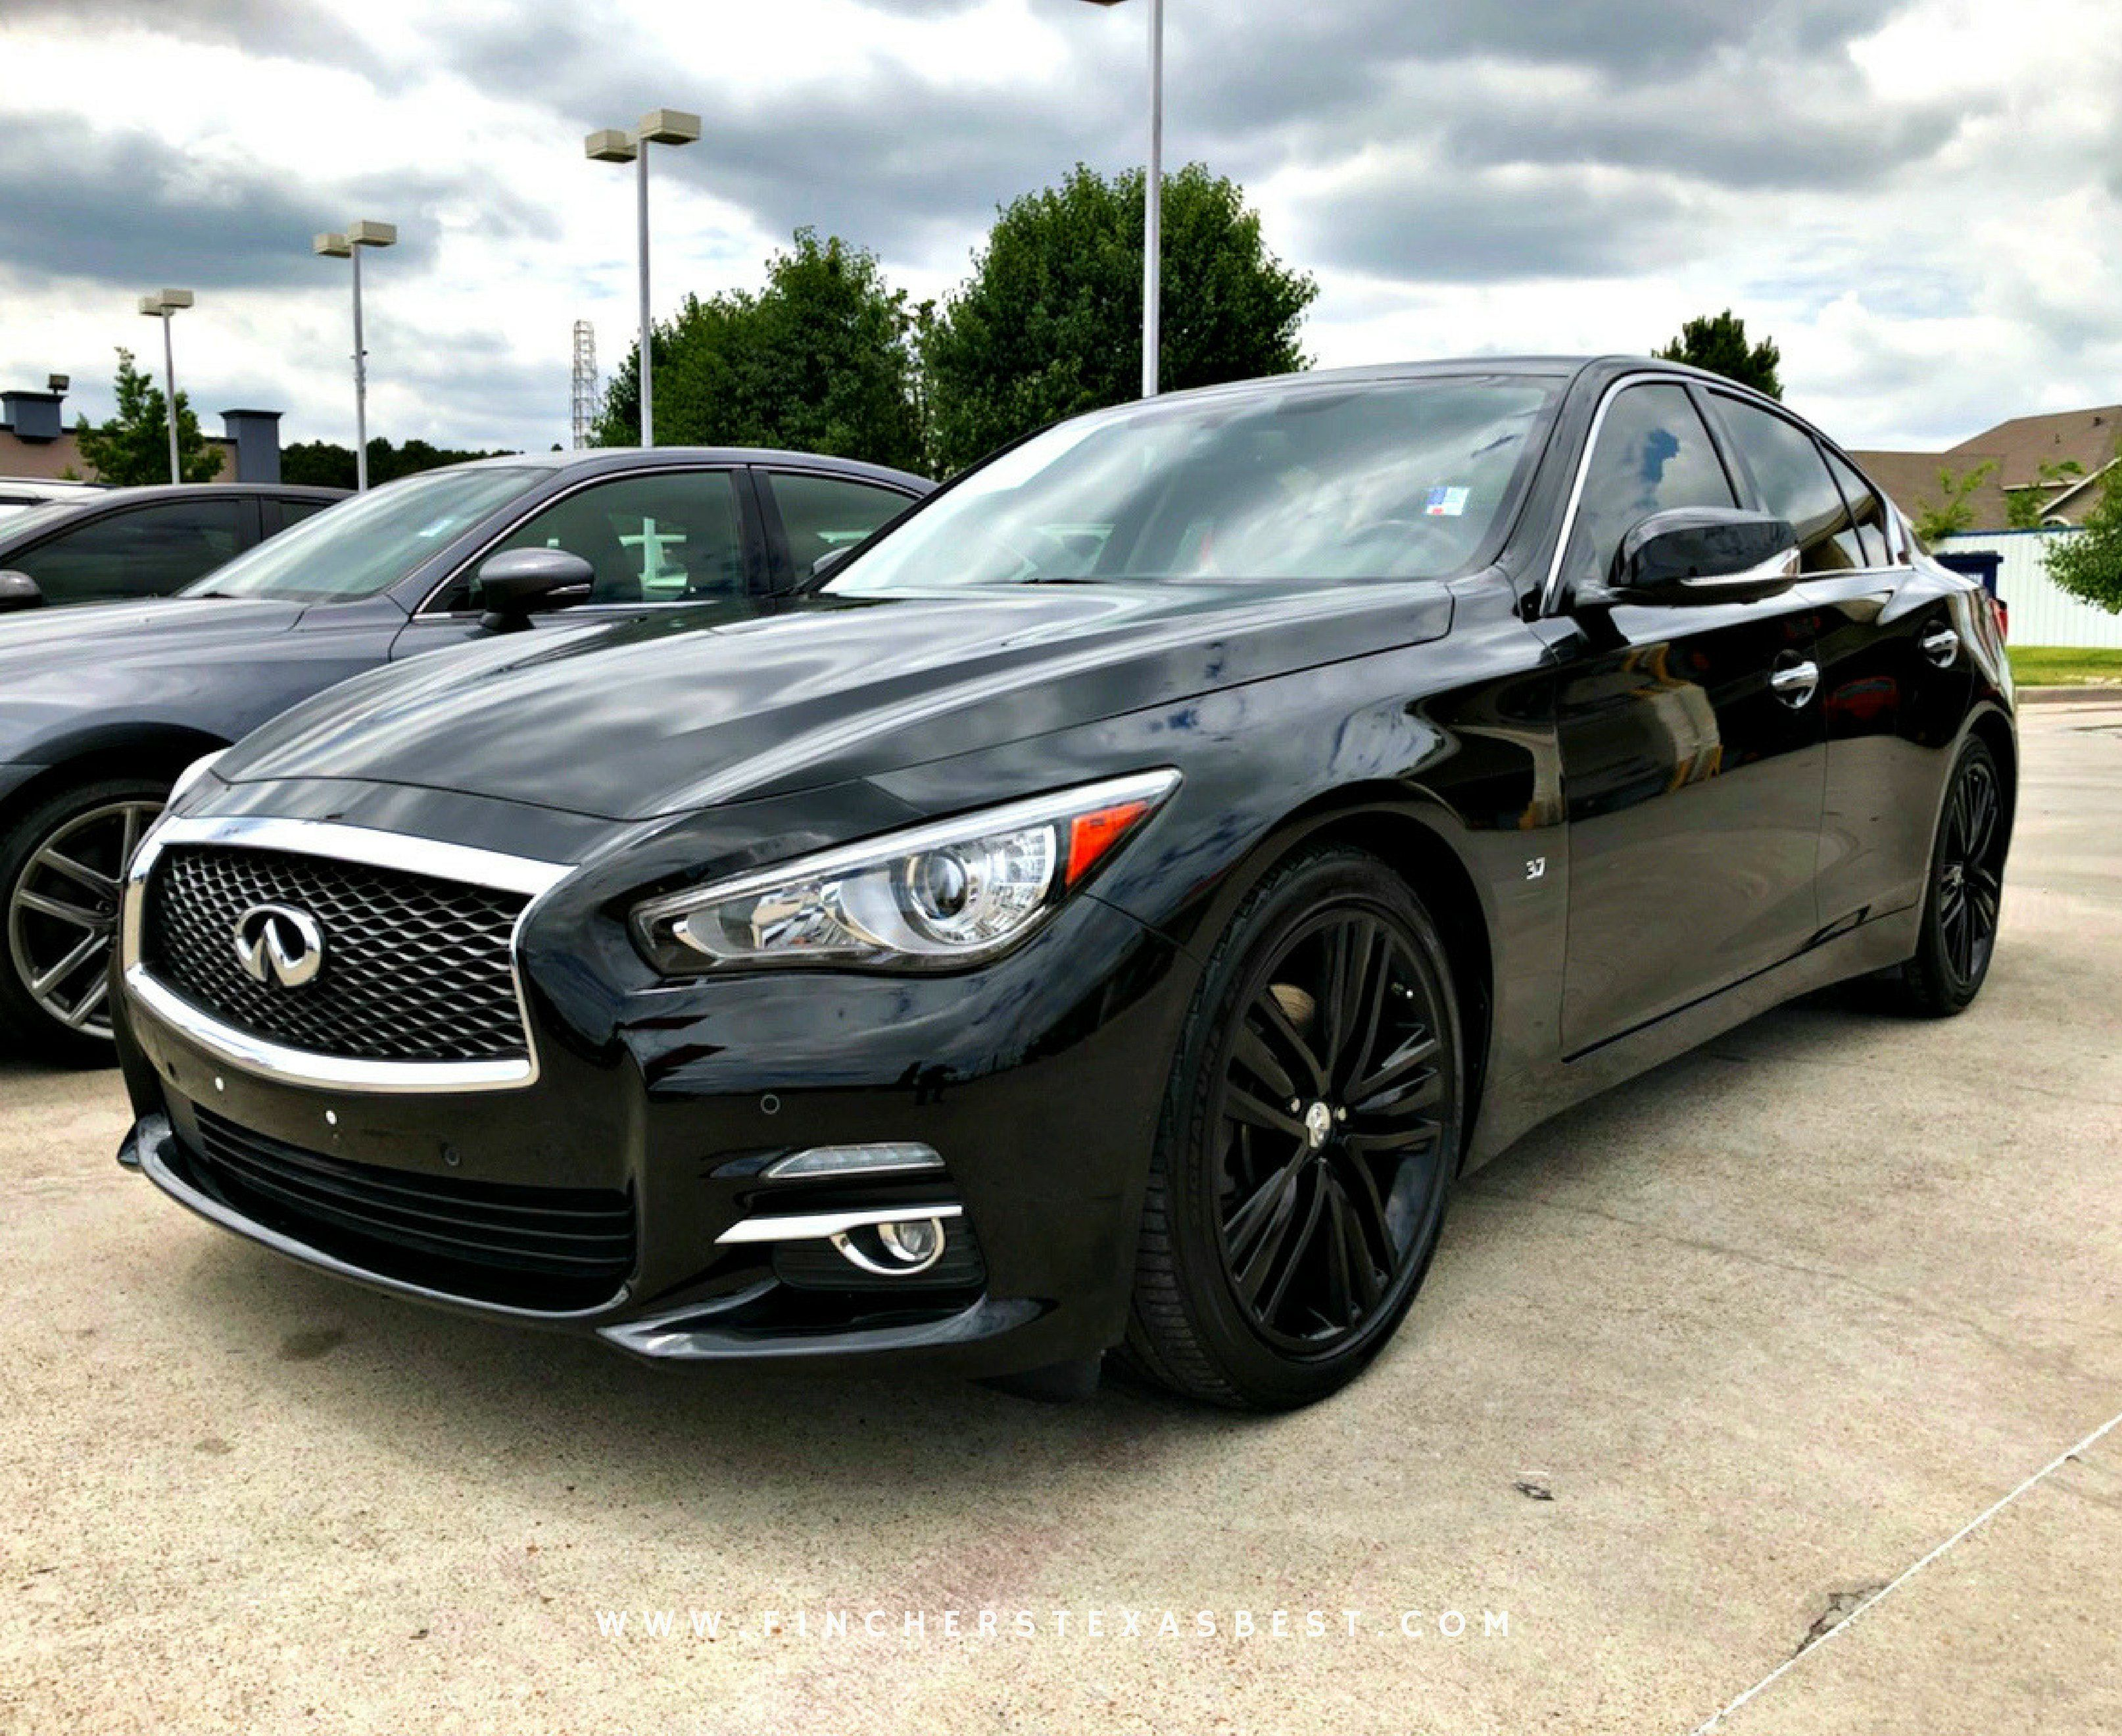 2015 Infiniti Q50 For Sale at Fincher s Texas Best Located in